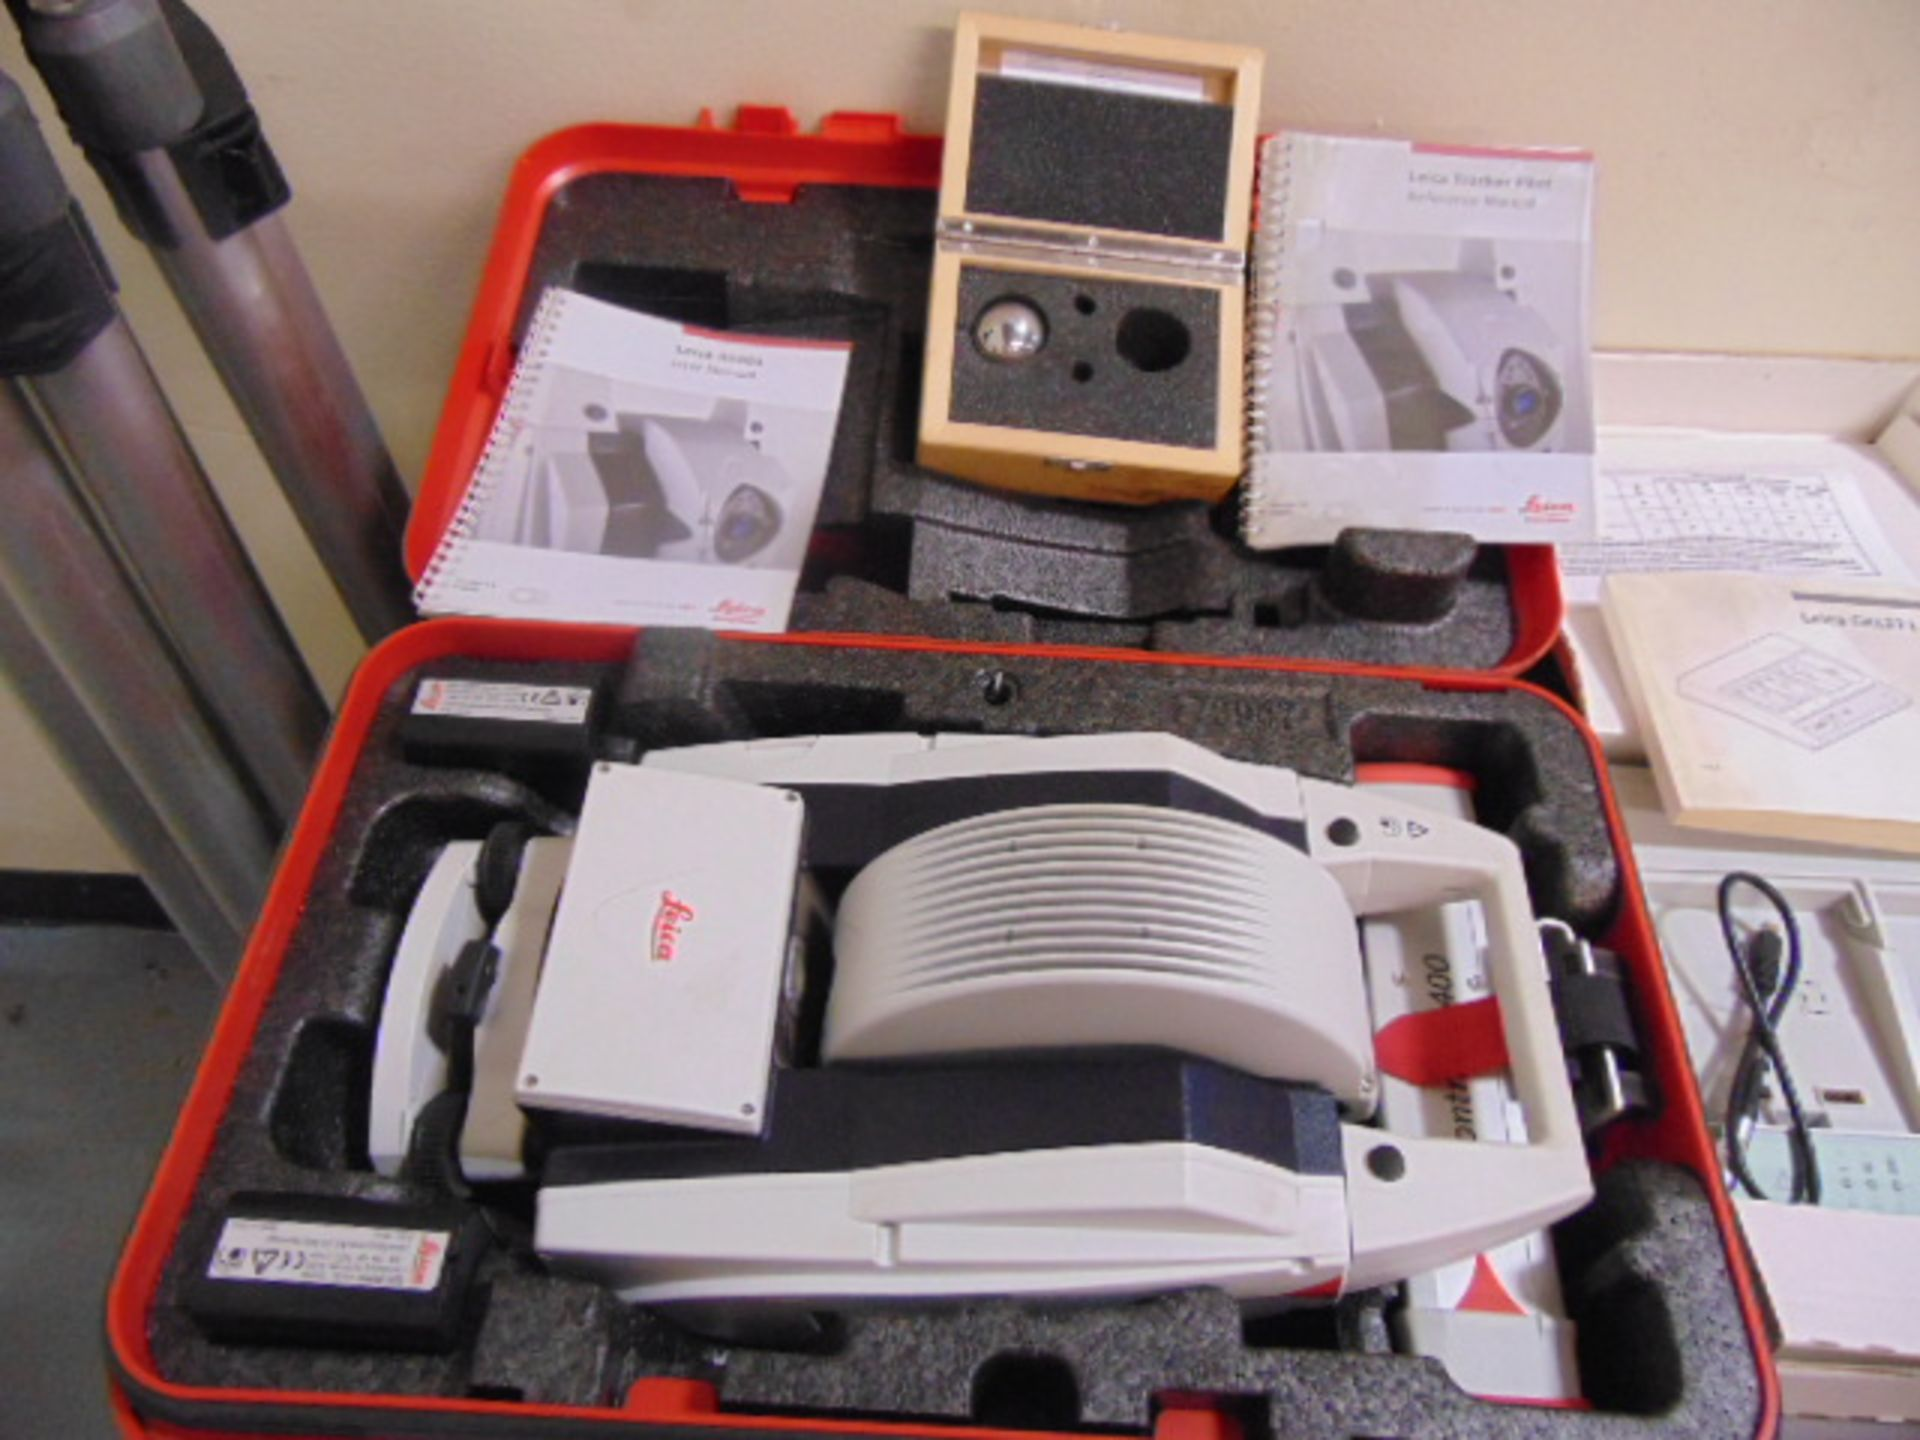 PORTABLE CMM LASER TRACKING SYSTEM, LEICA ABSOLUTE TRACKER MDL. AT401, Infinite horiz. rotation +/-